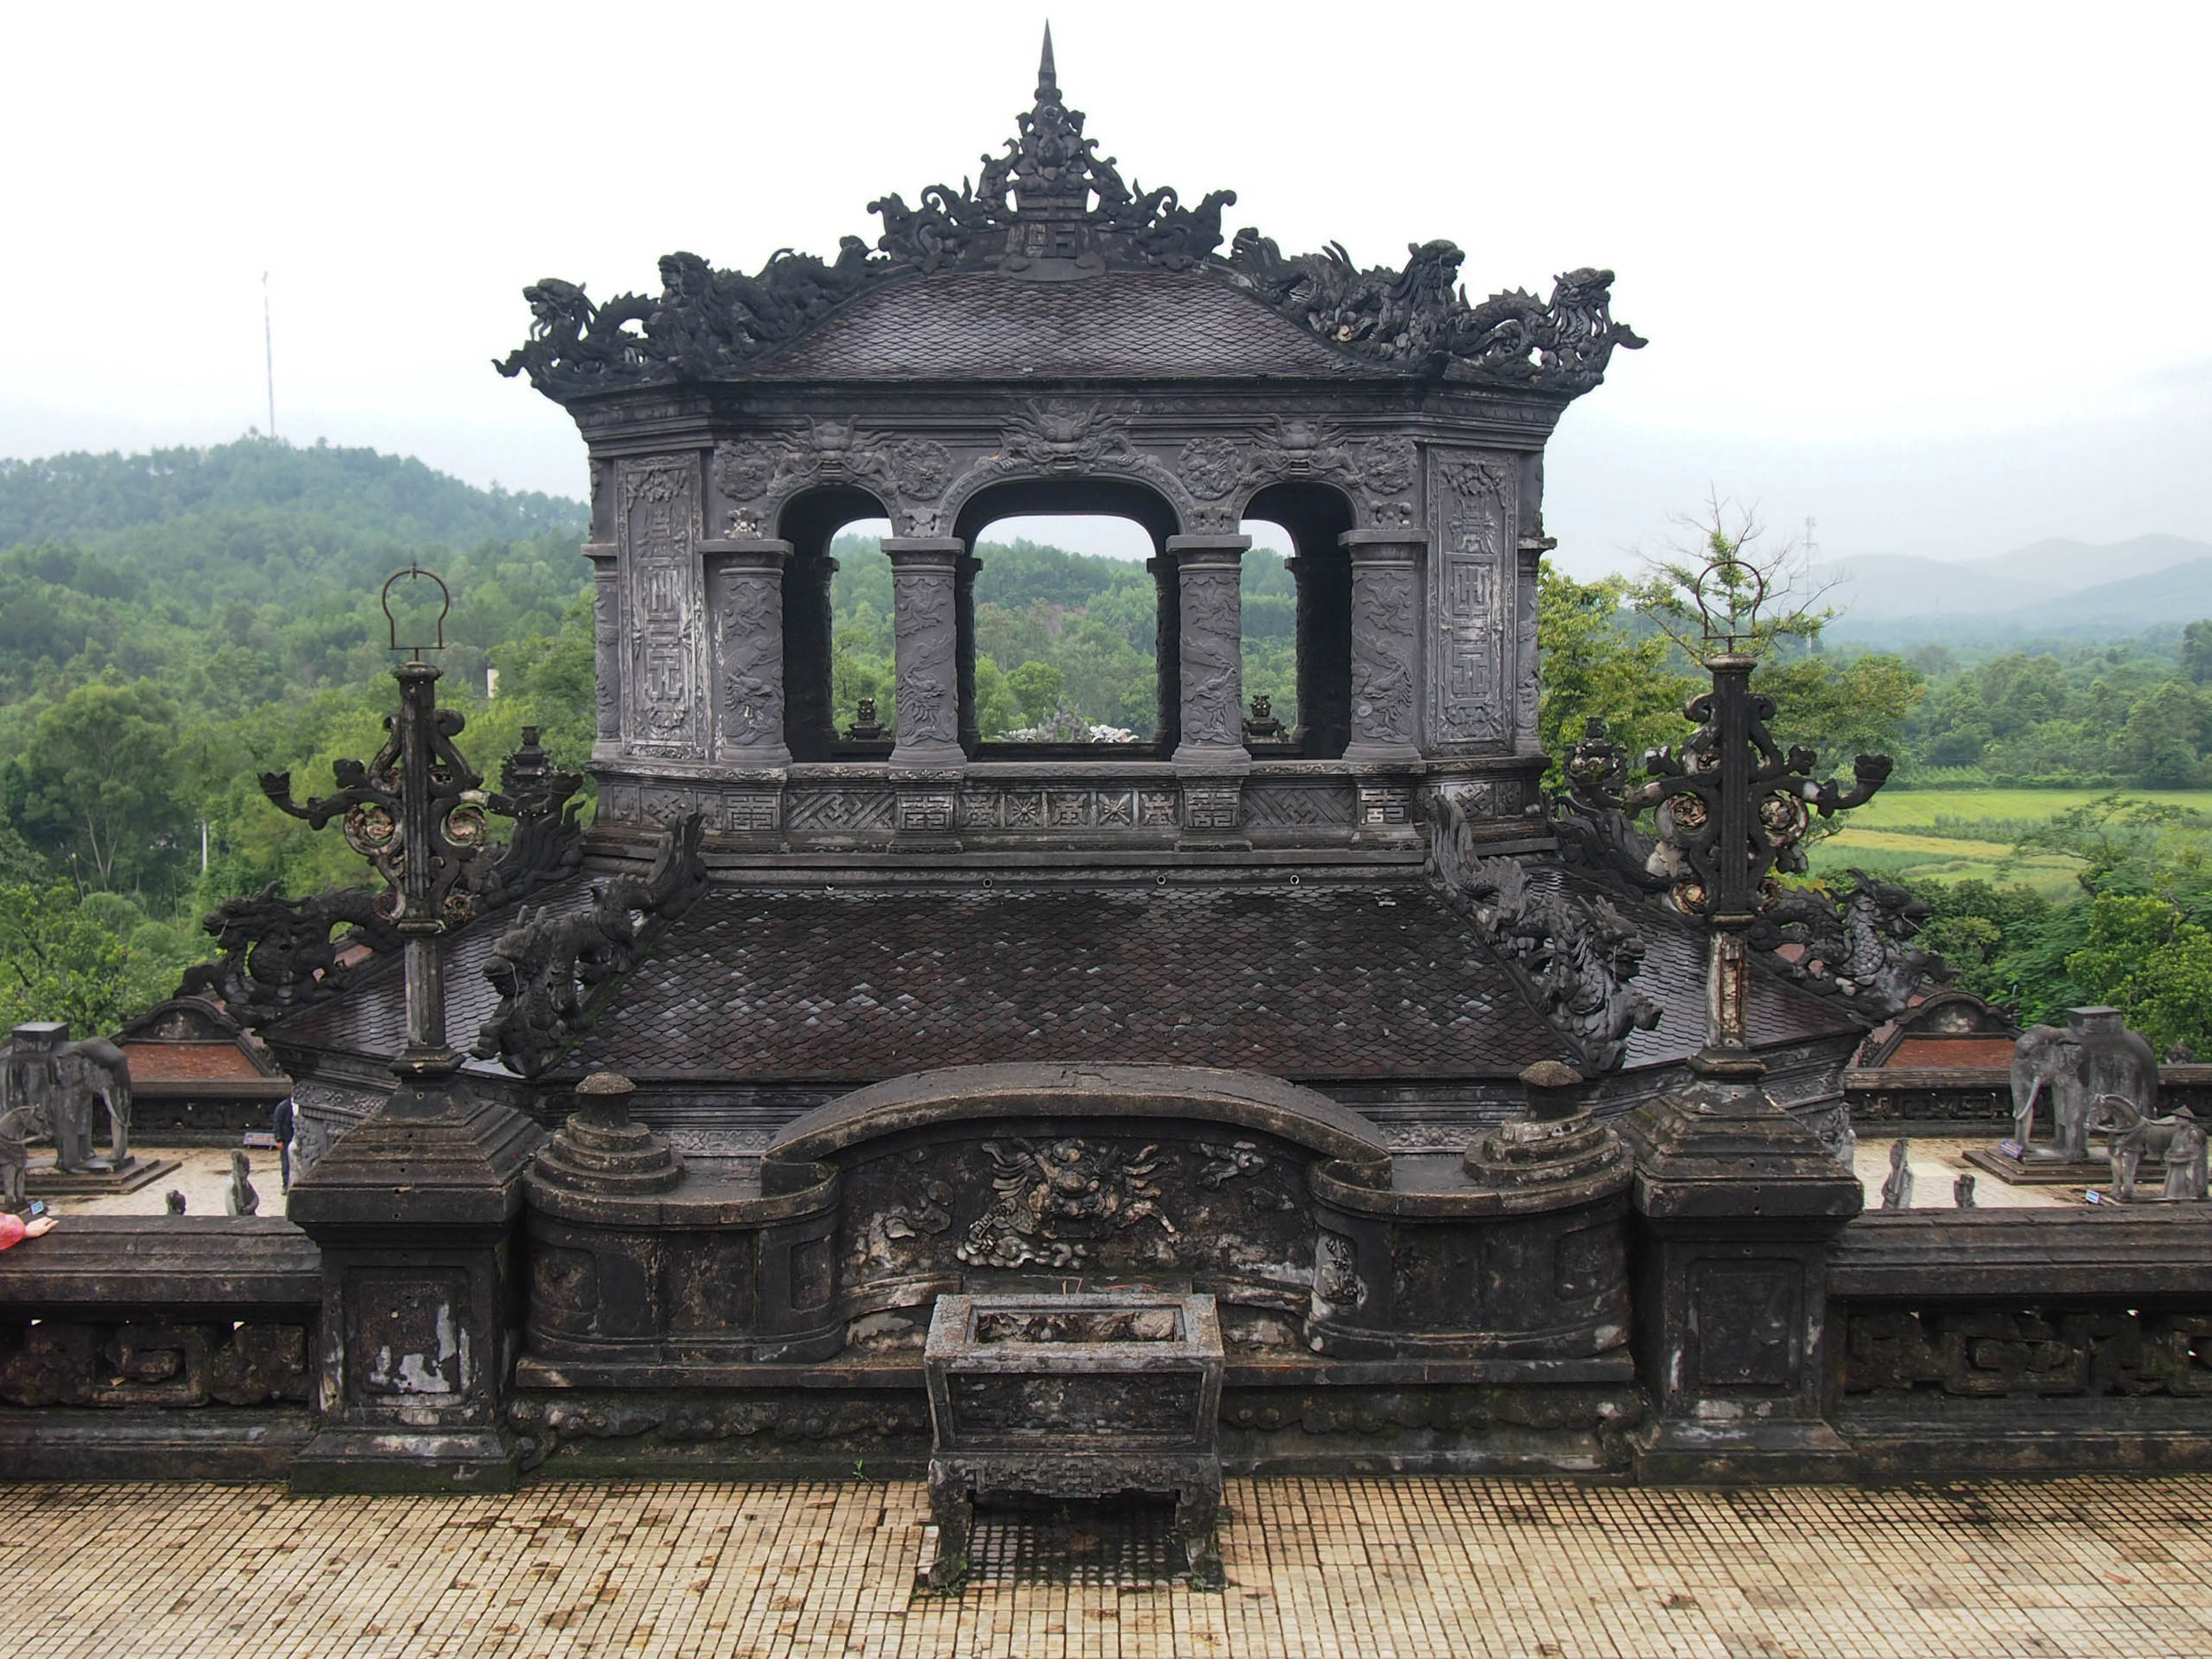 The tomb of Khai Dinh